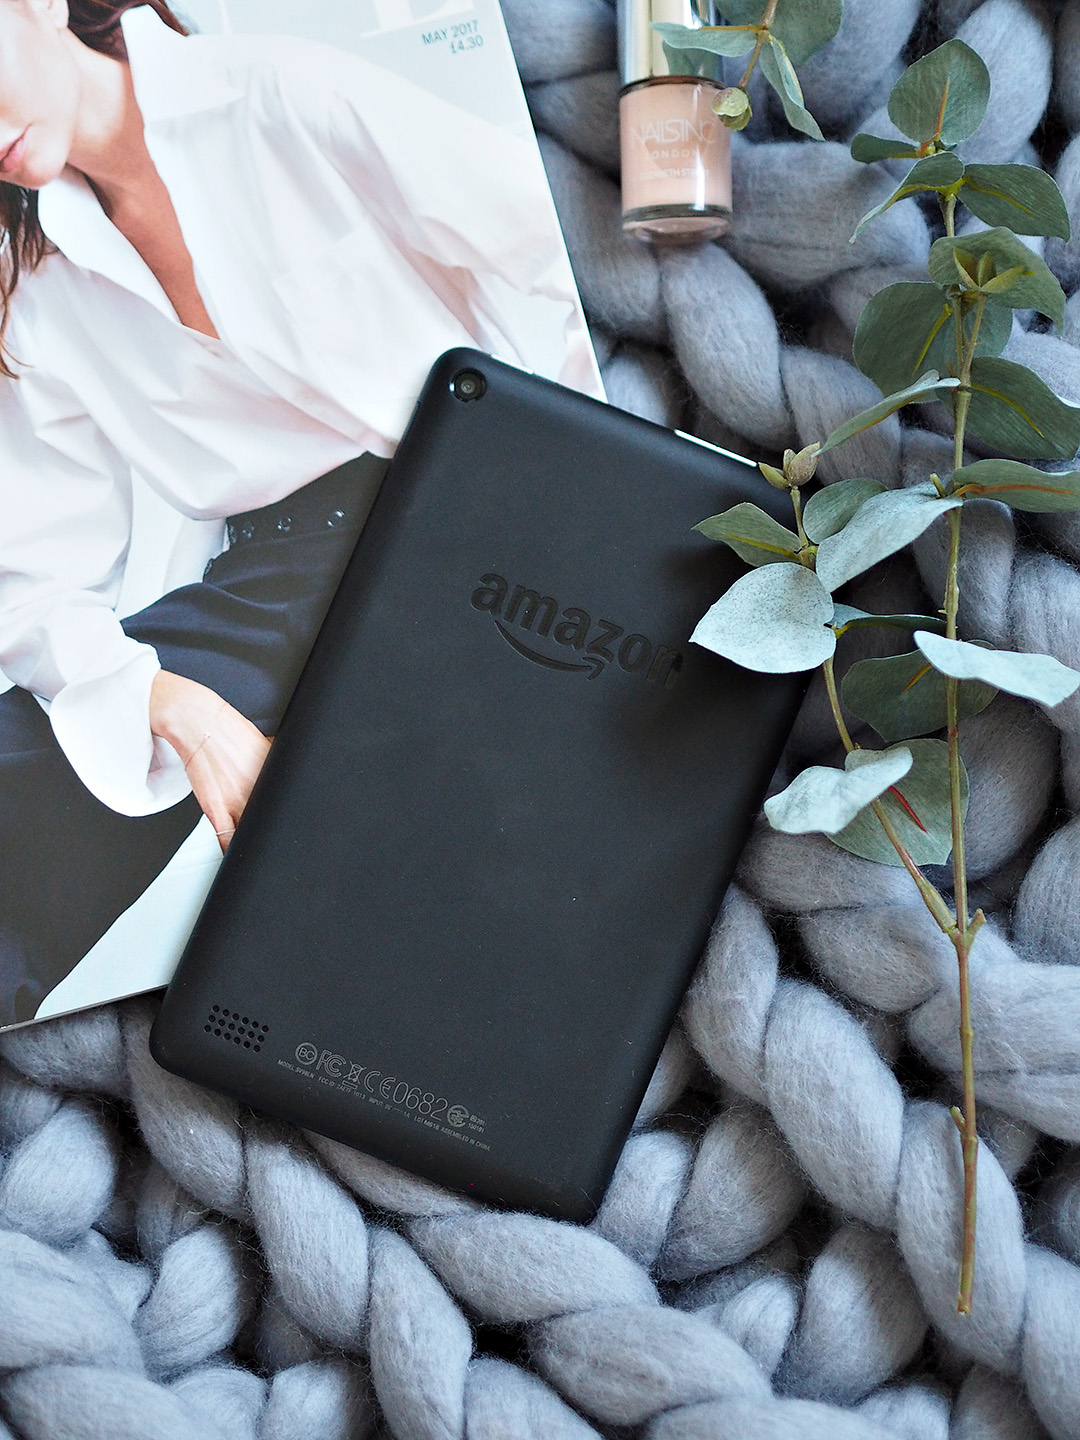 Amazon Fire Review